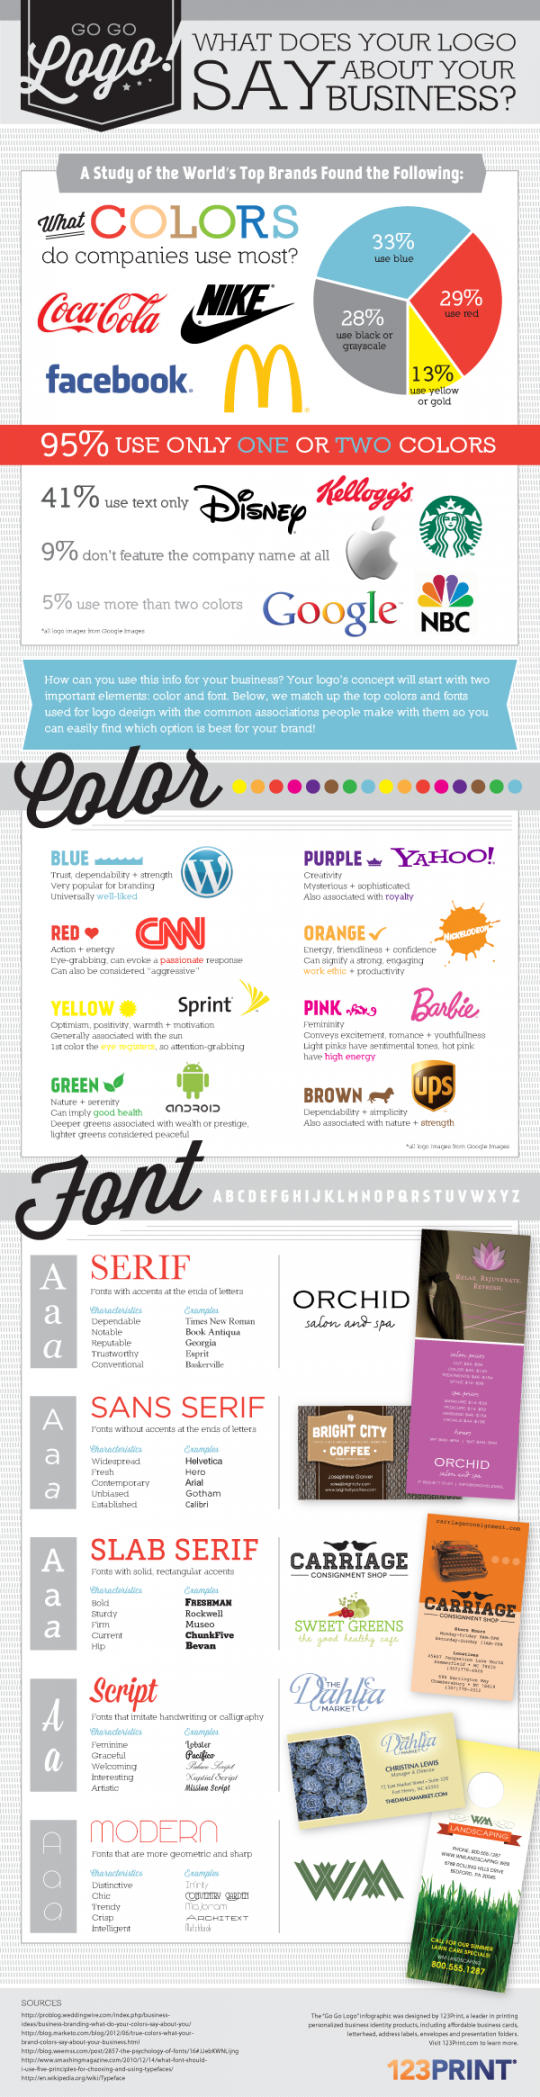 What Does Your Logo Say About Your Business?